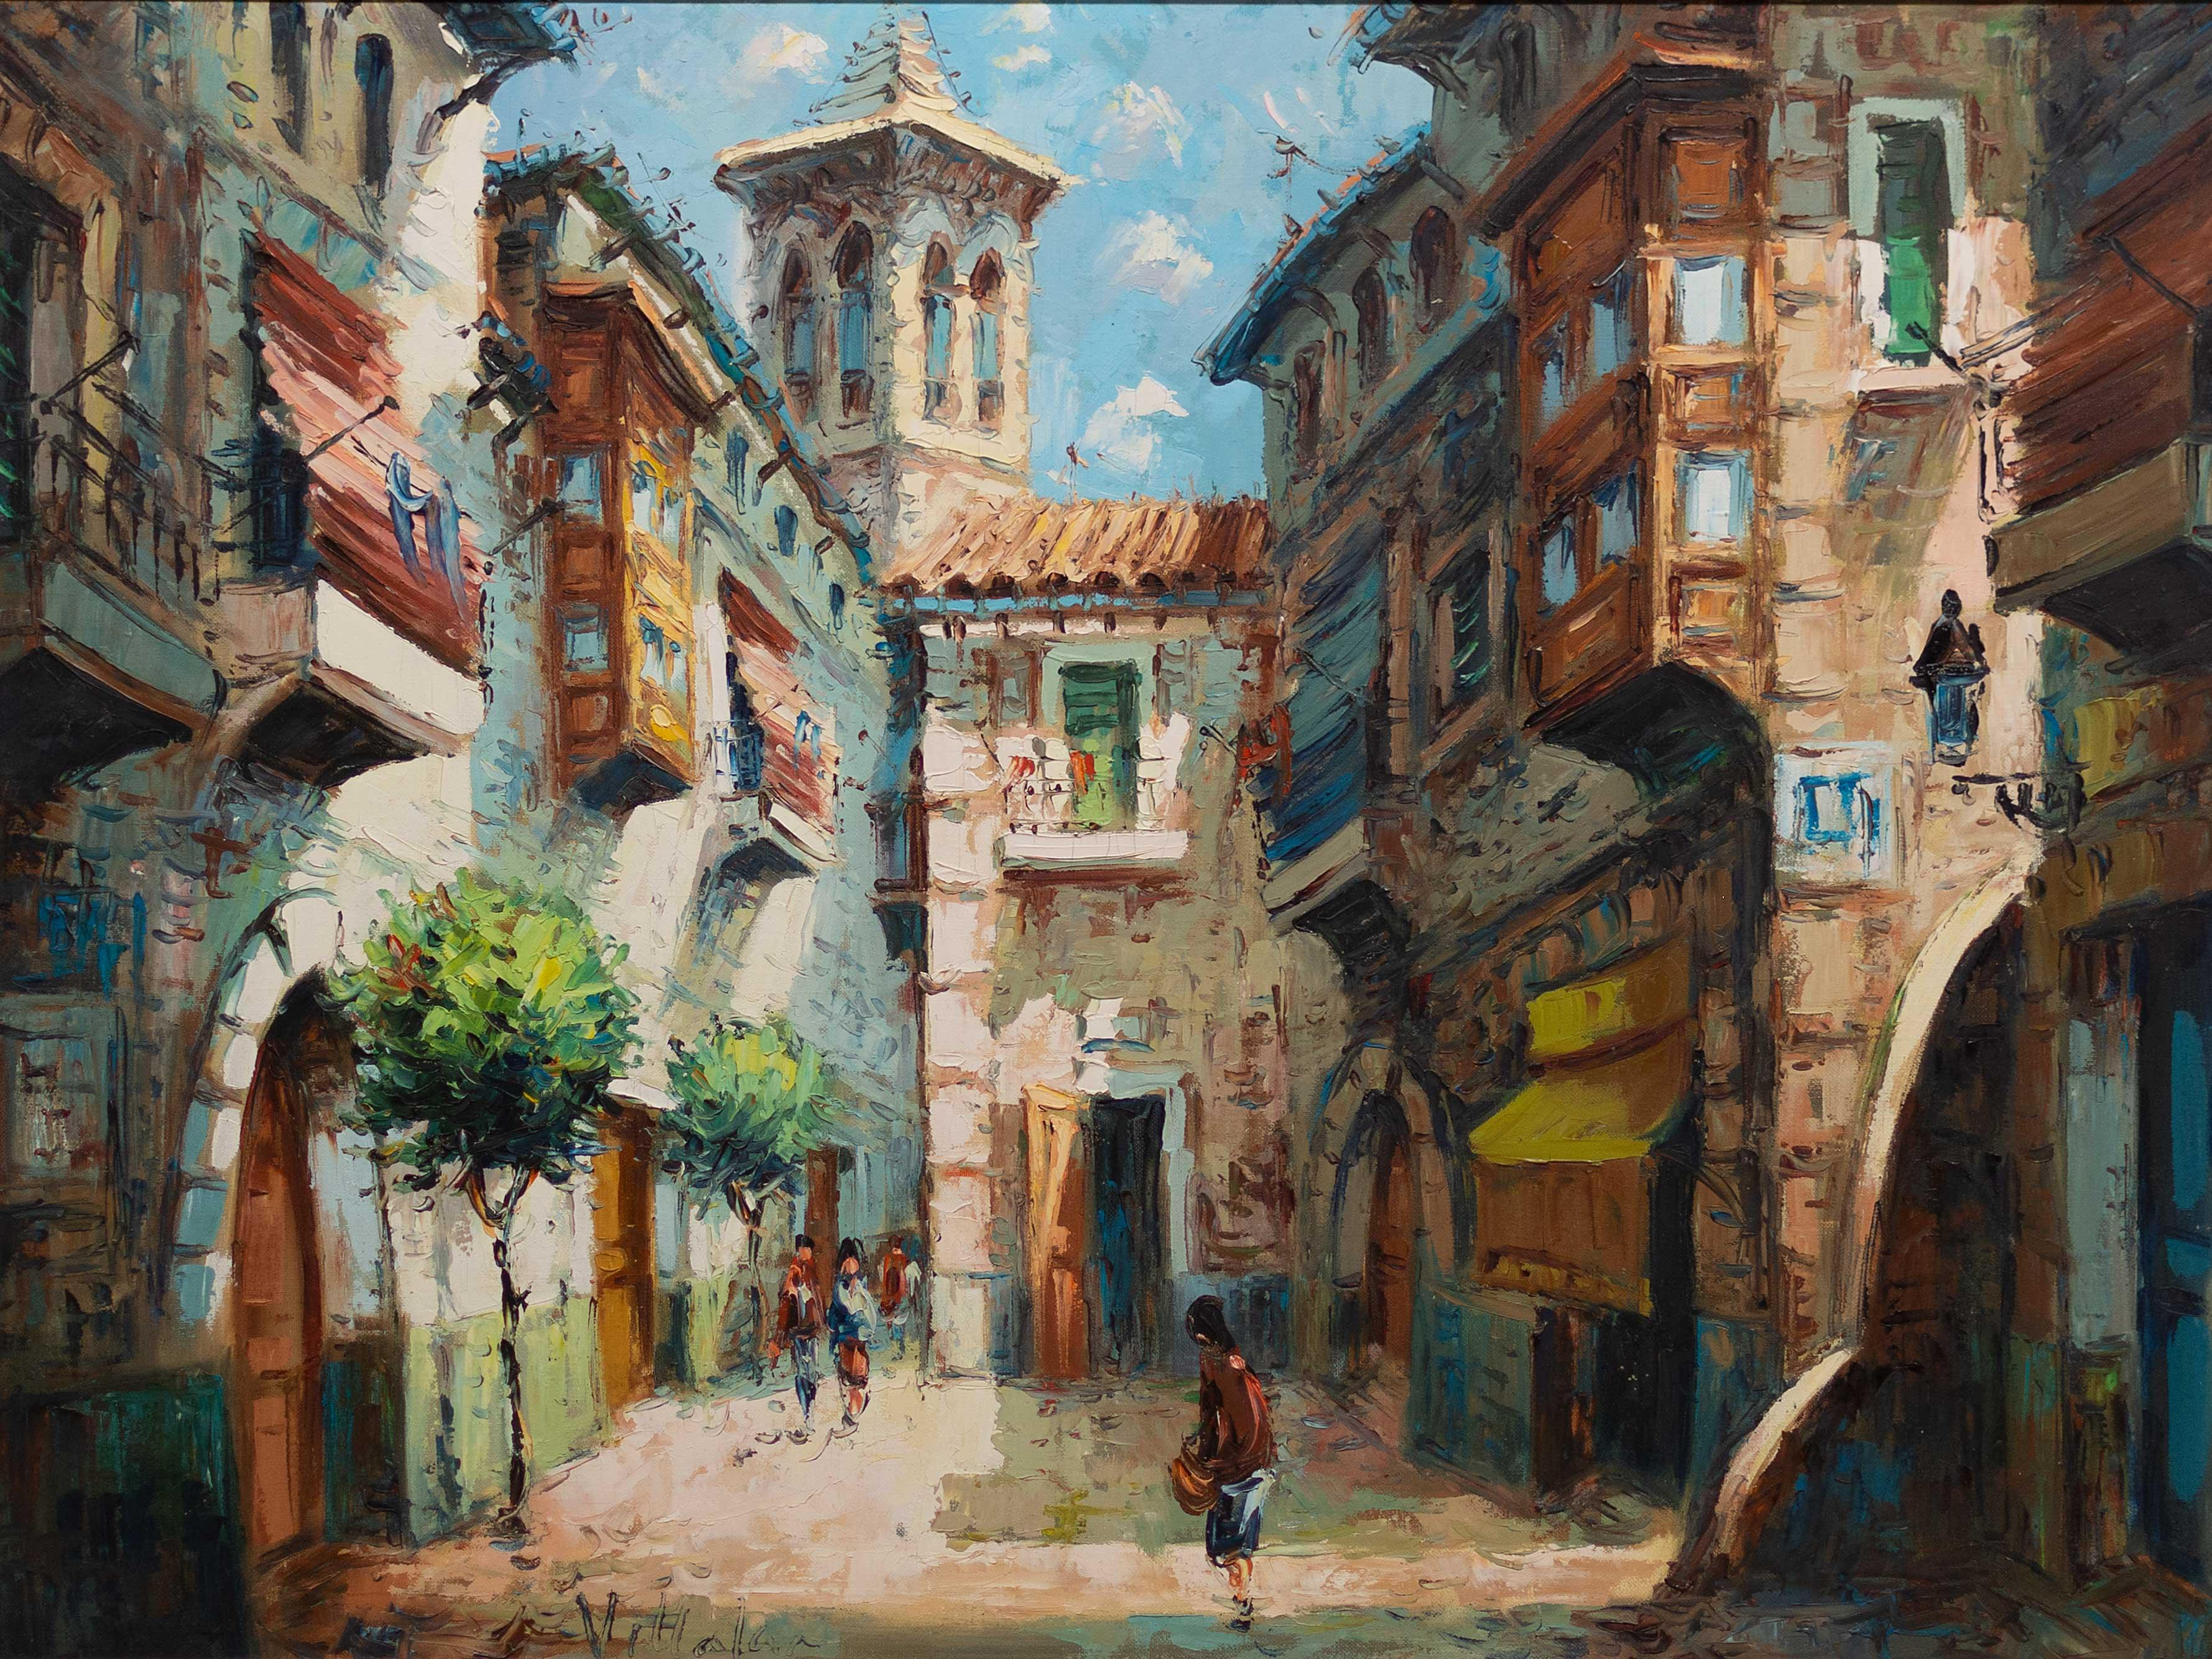 Vit****** (European School 20th Century) Oil, Mediterranean Street Scene, Signed, 64 x 90